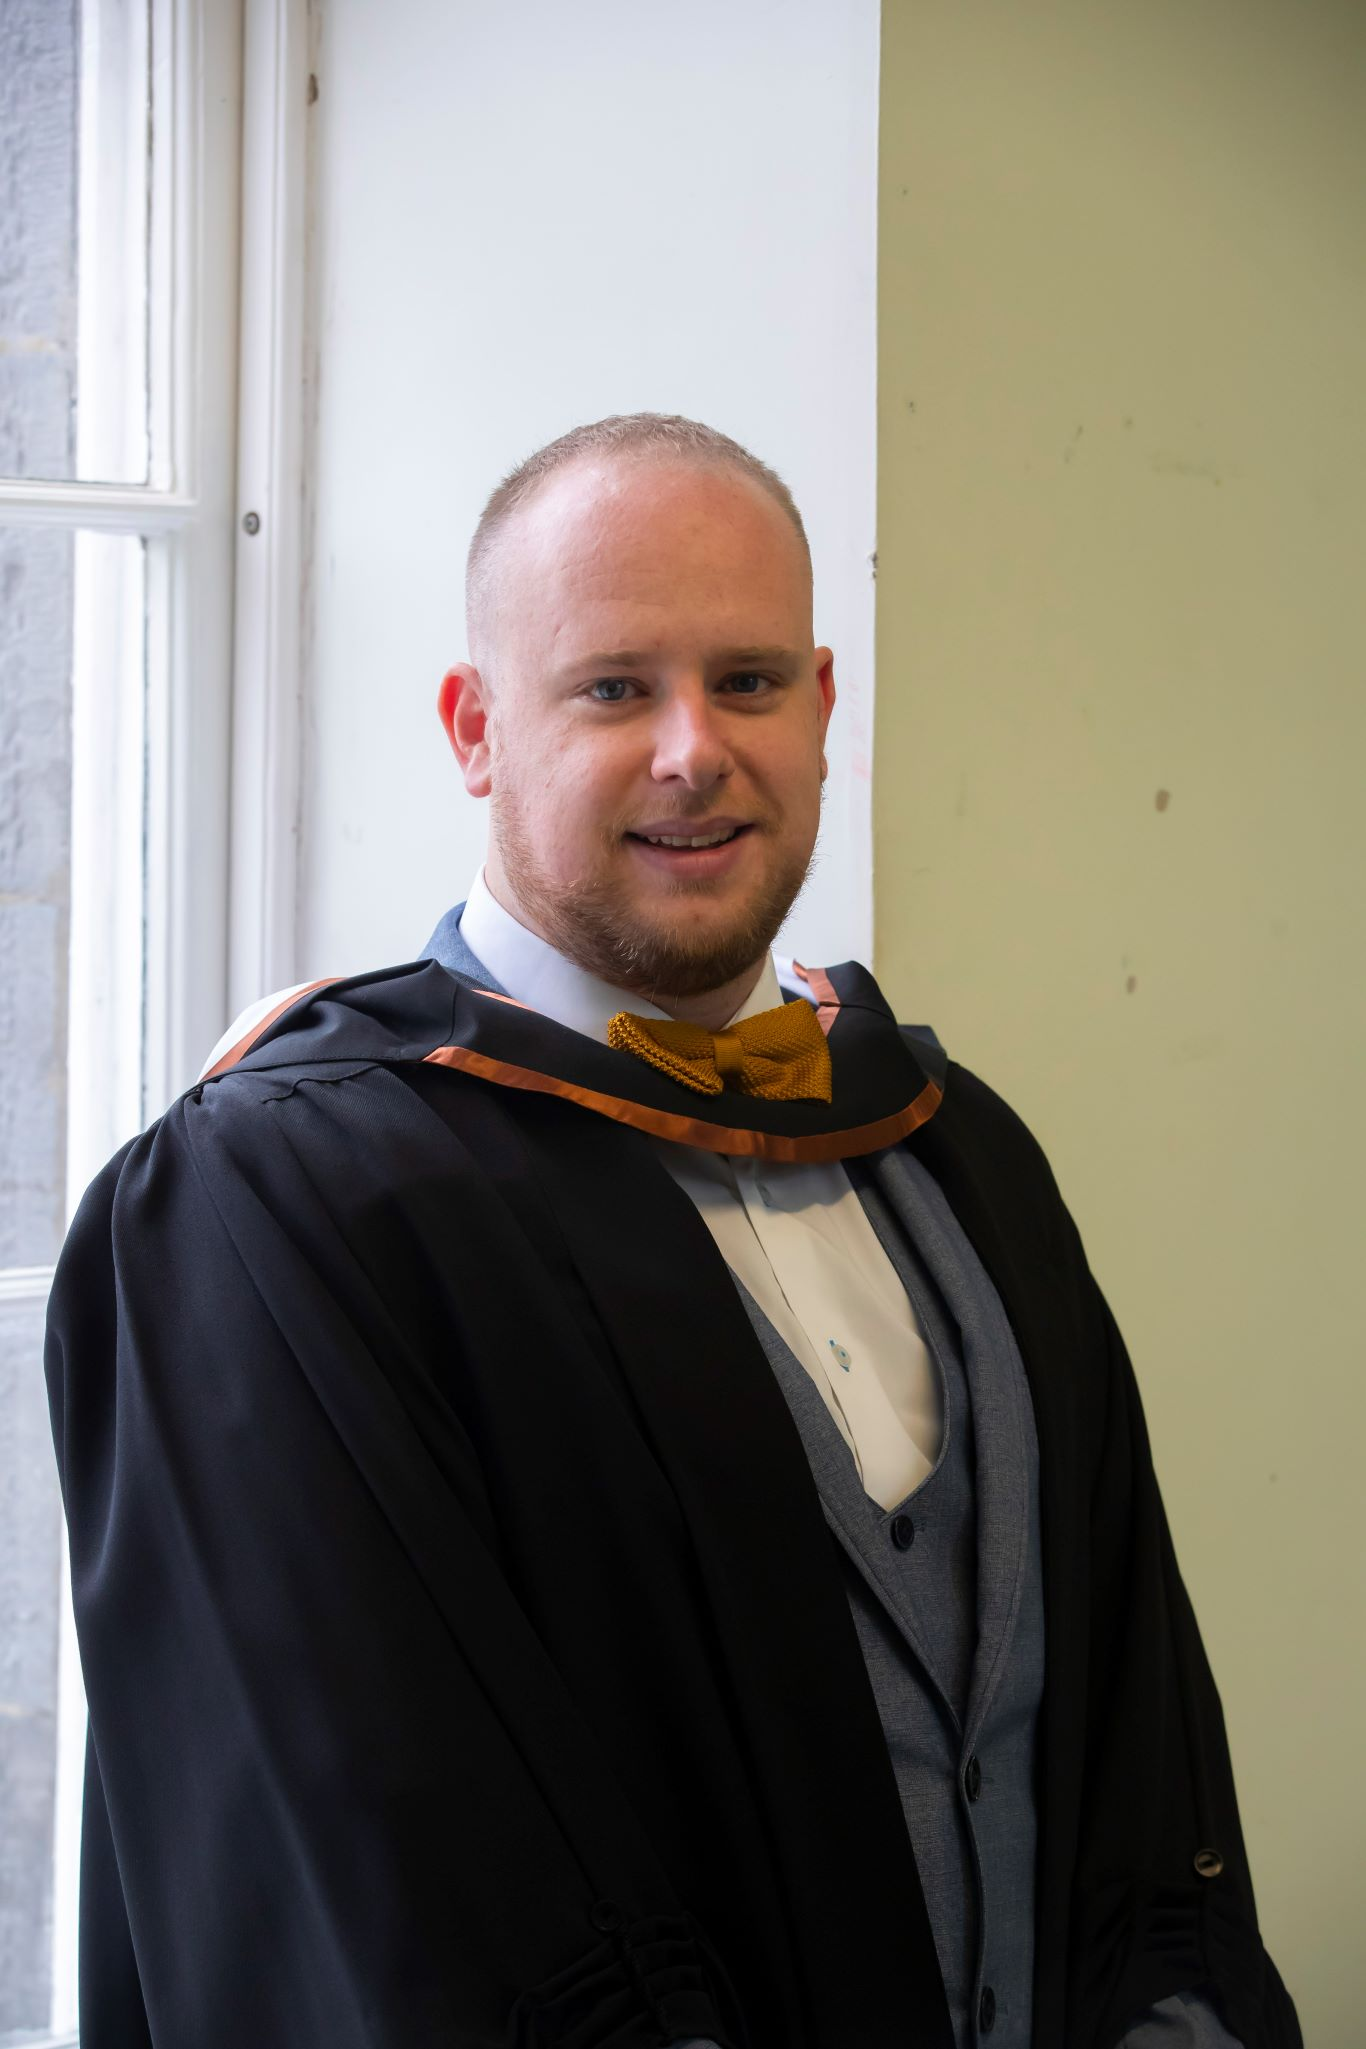 Conferring stories: William Wall